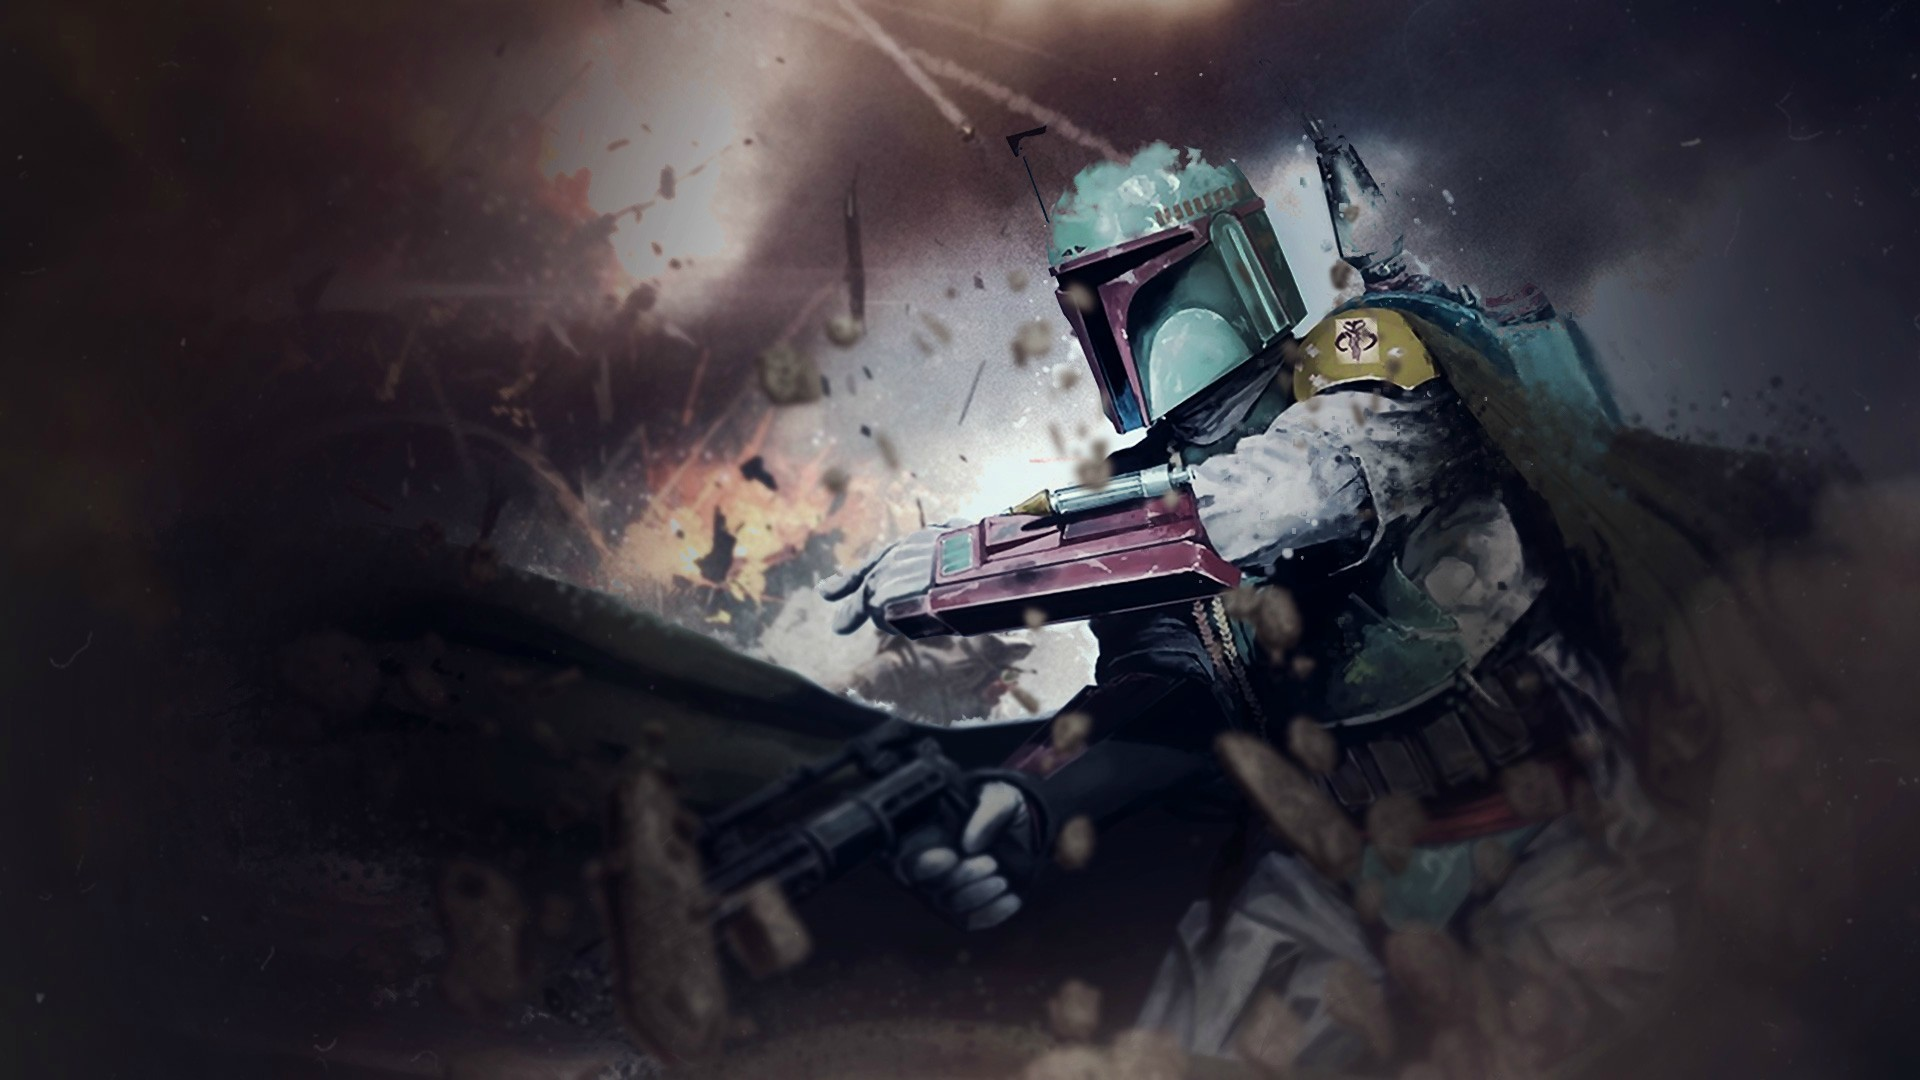 … star wars wallpapers hd collection free download …